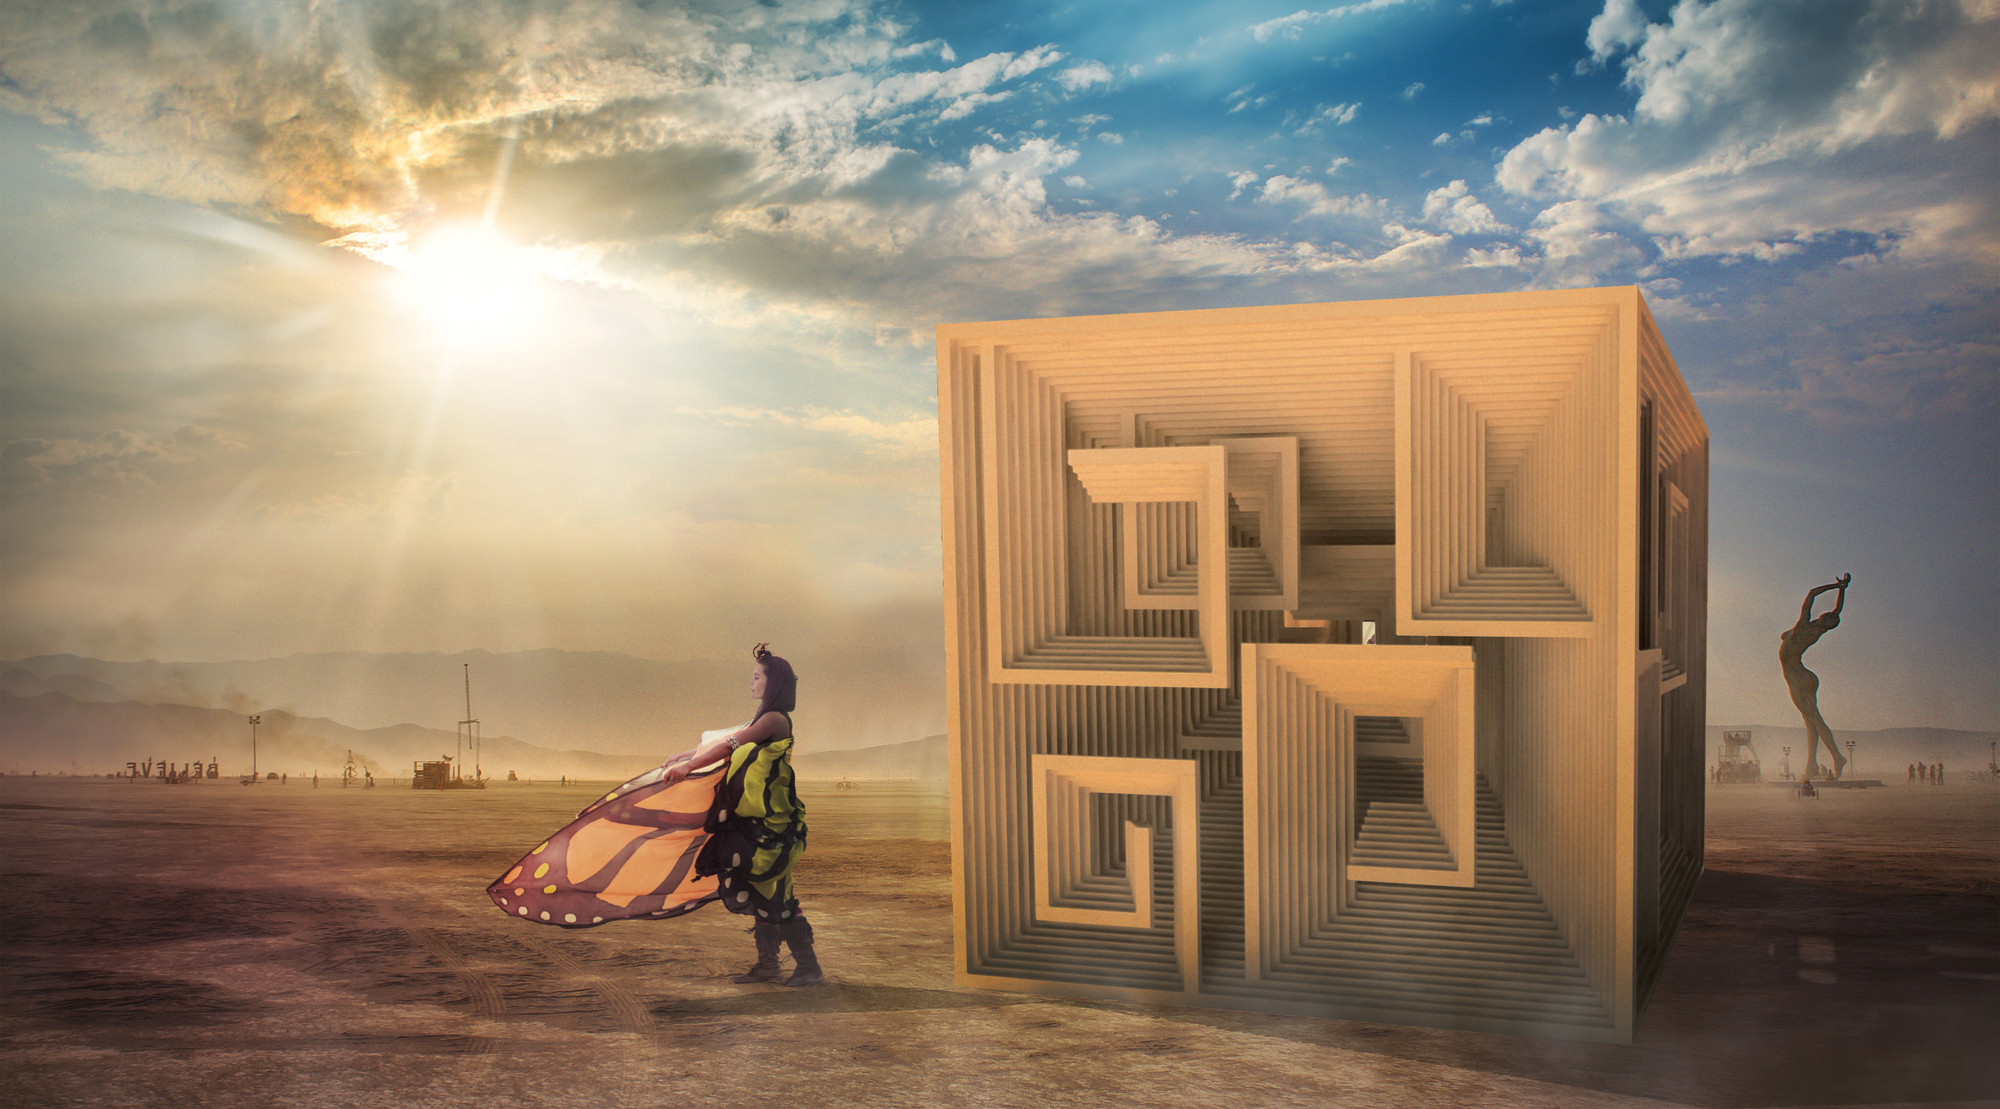 3 Student-Designed Pavilions from DS10 to be Built at Burning Man, Bismuth Bivouac / Jon Leung